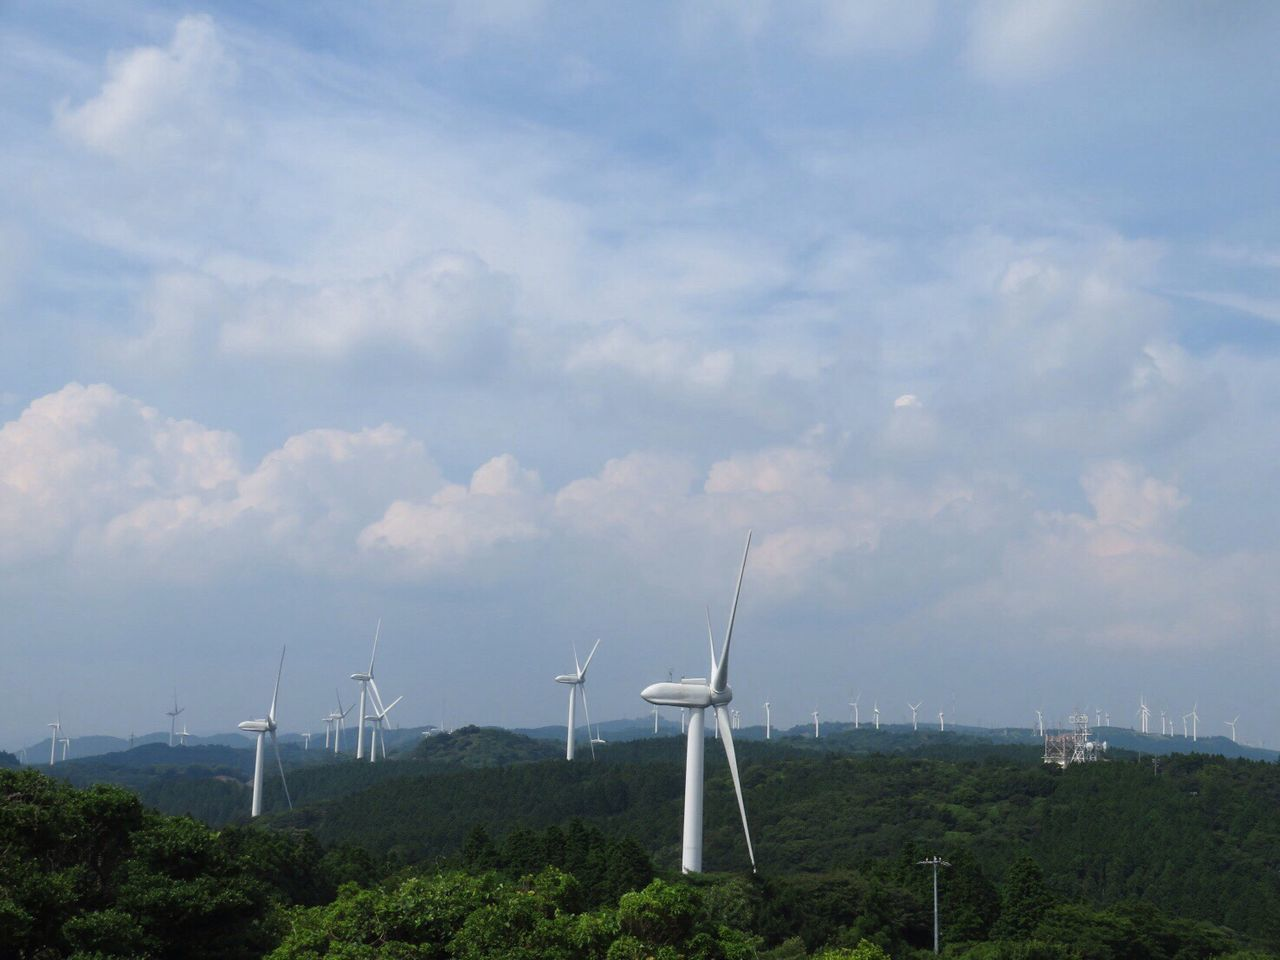 Environmental Conservation Wind Power Alternative Energy Wind Turbine Fuel And Power Generation Renewable Energy Windmill Sky Cloud - Sky Industrial Windmill No People Day Nature Outdoors Low Angle View Beauty In Nature